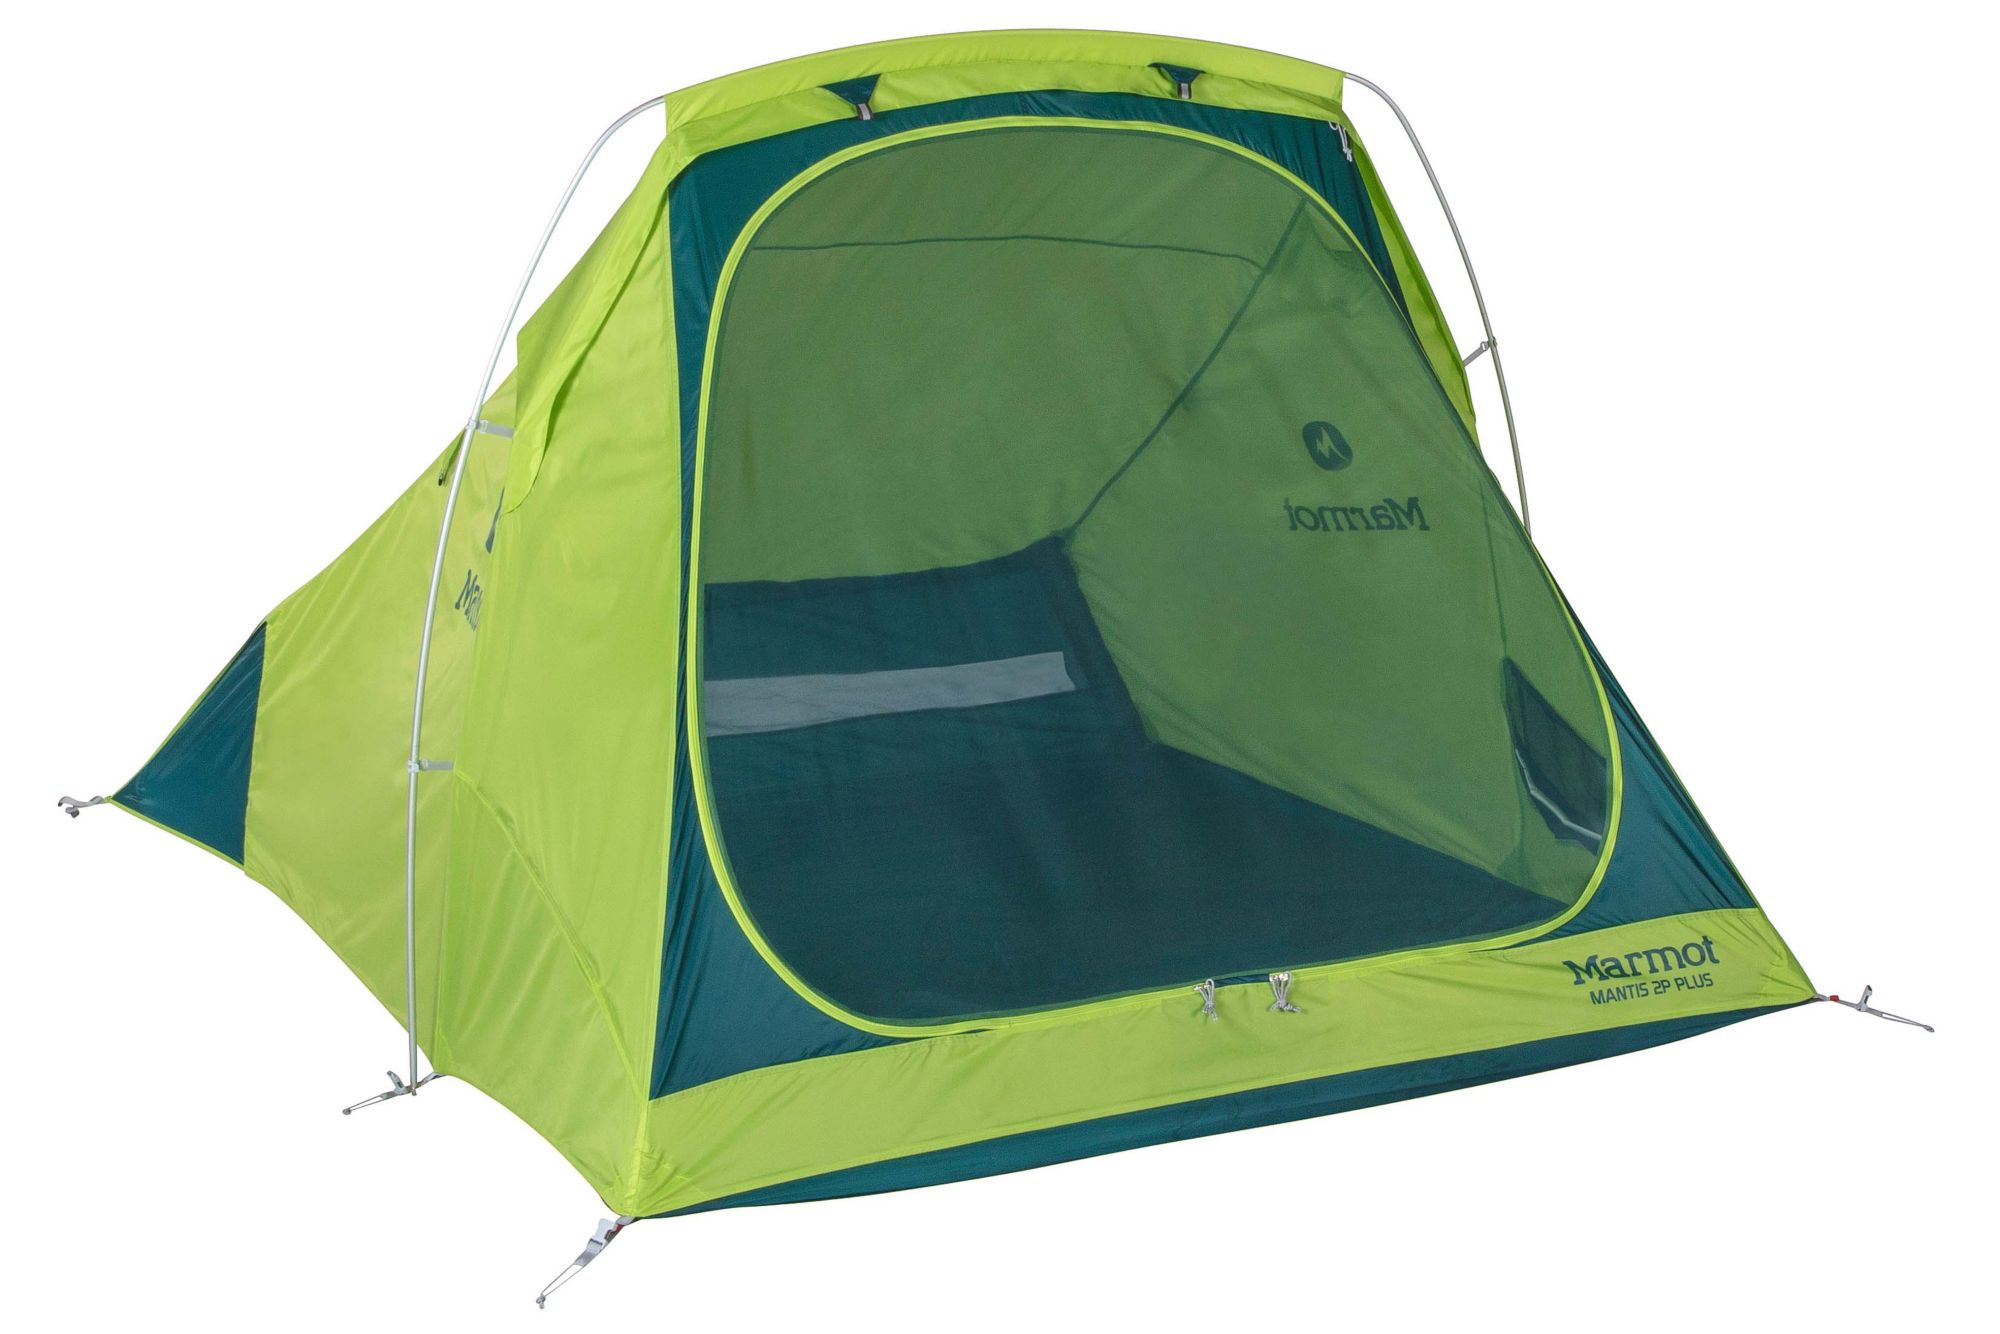 Mantis 2P Plus Macaw Green/Deep Teal medium  sc 1 st  Marmot & 2 Person Tents / Tents / Equipment | Marmot.com